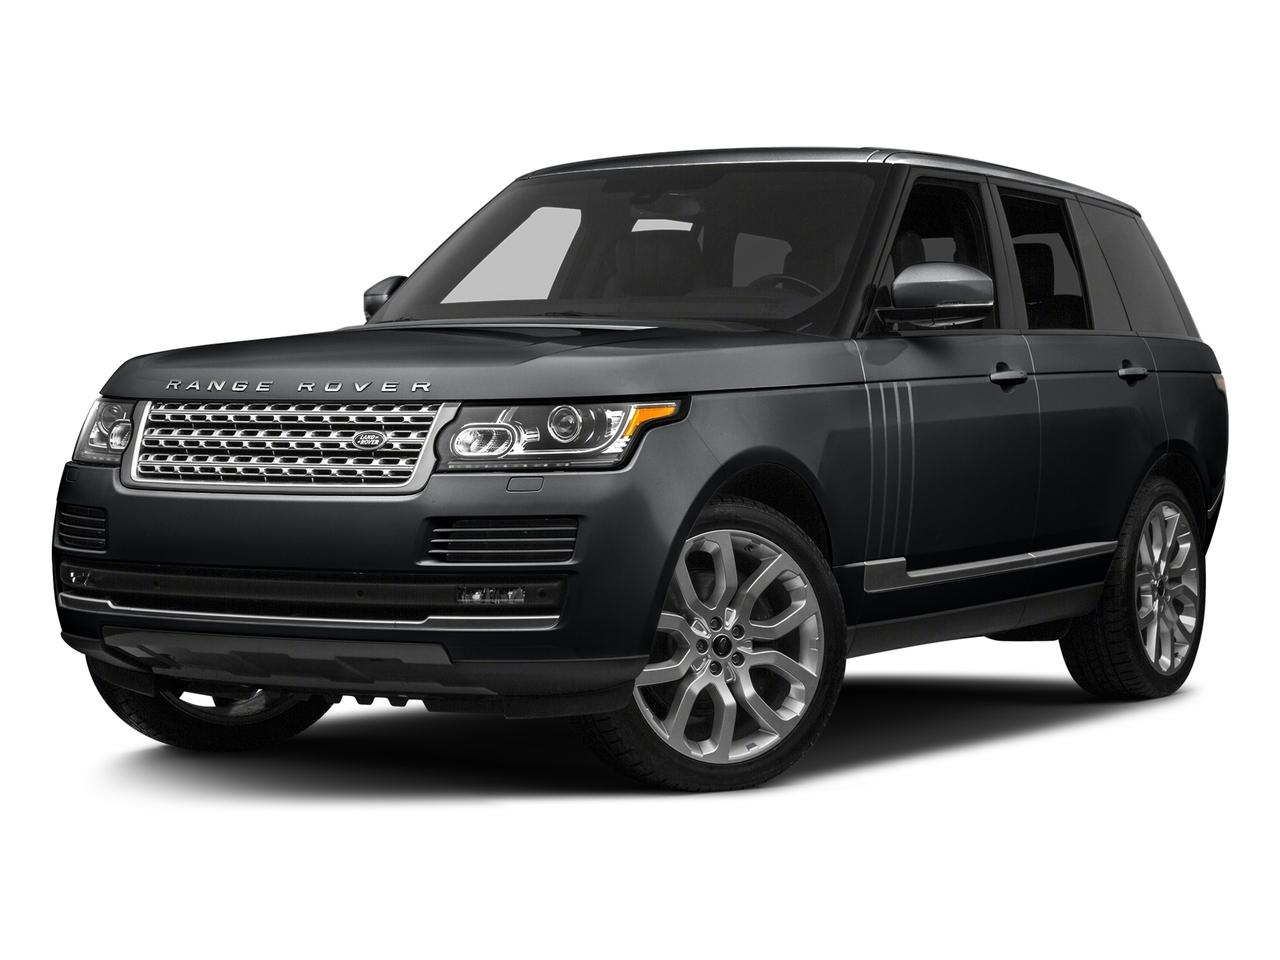 2016 Land Rover Range Rover Vehicle Photo in Willow Grove, PA 19090